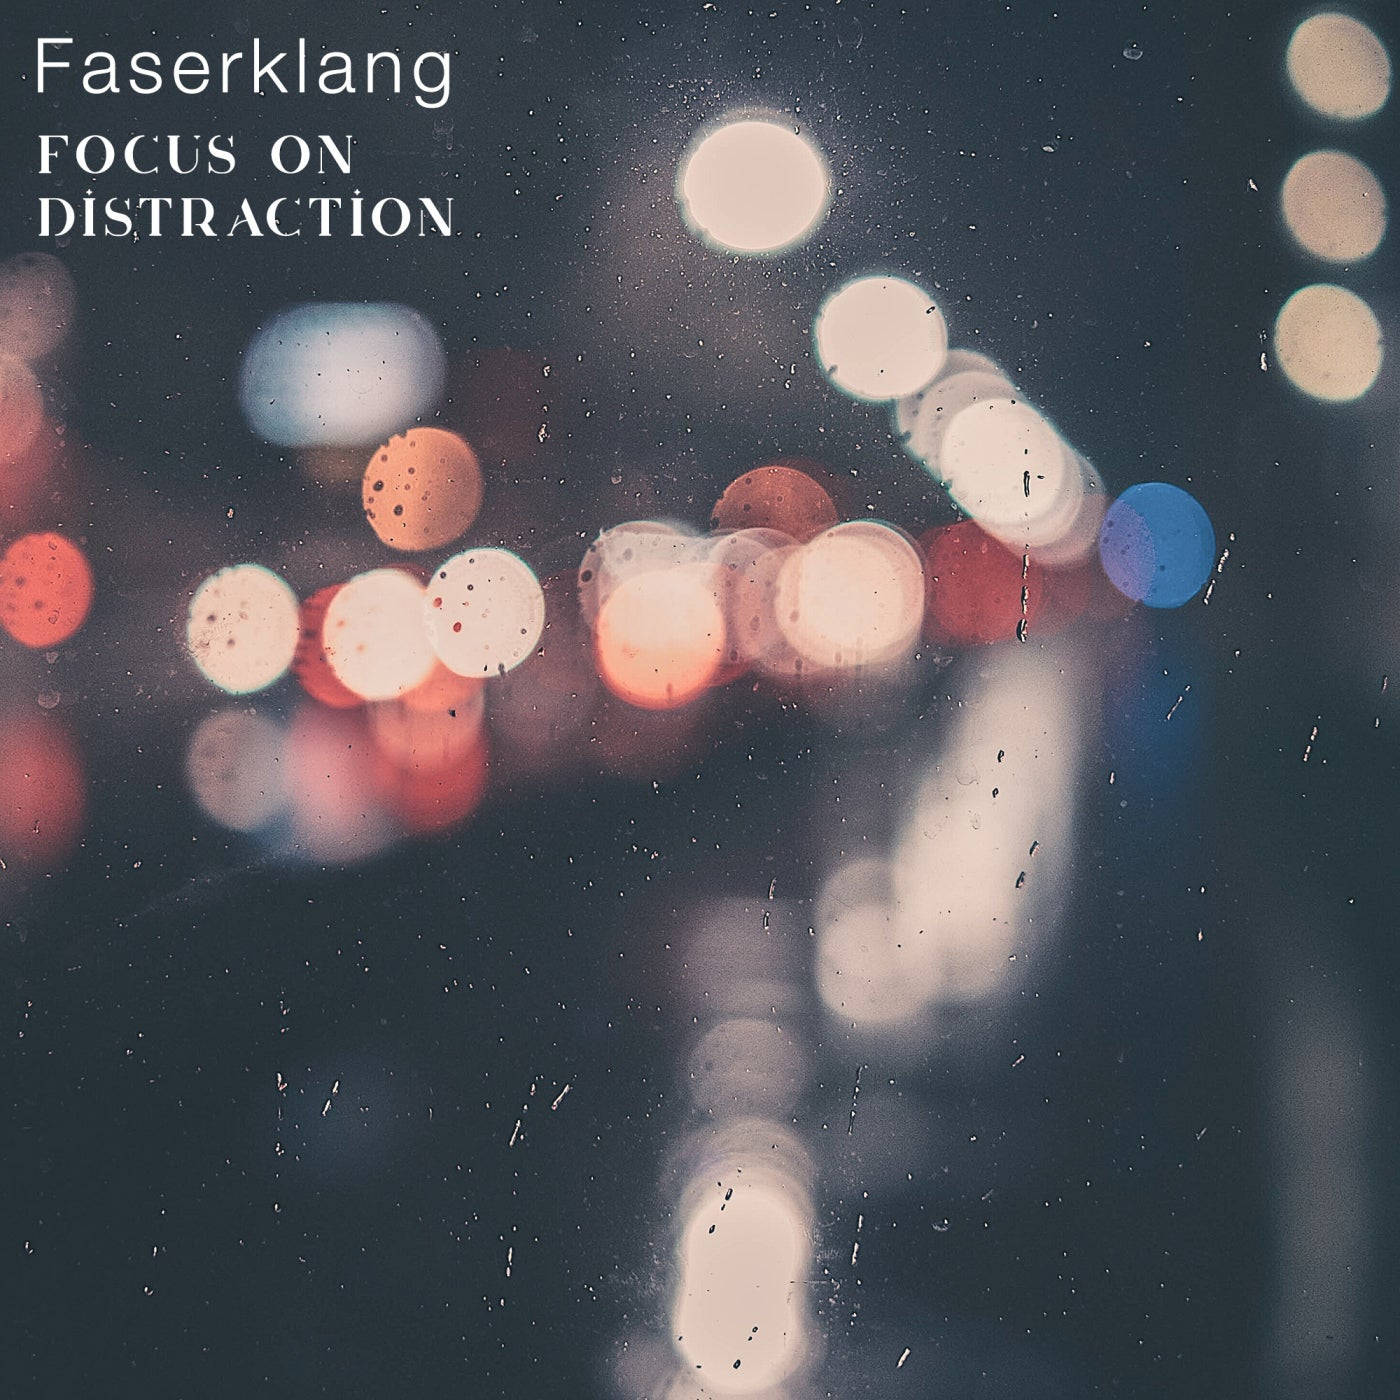 Download Focus on distraction on Electrobuzz